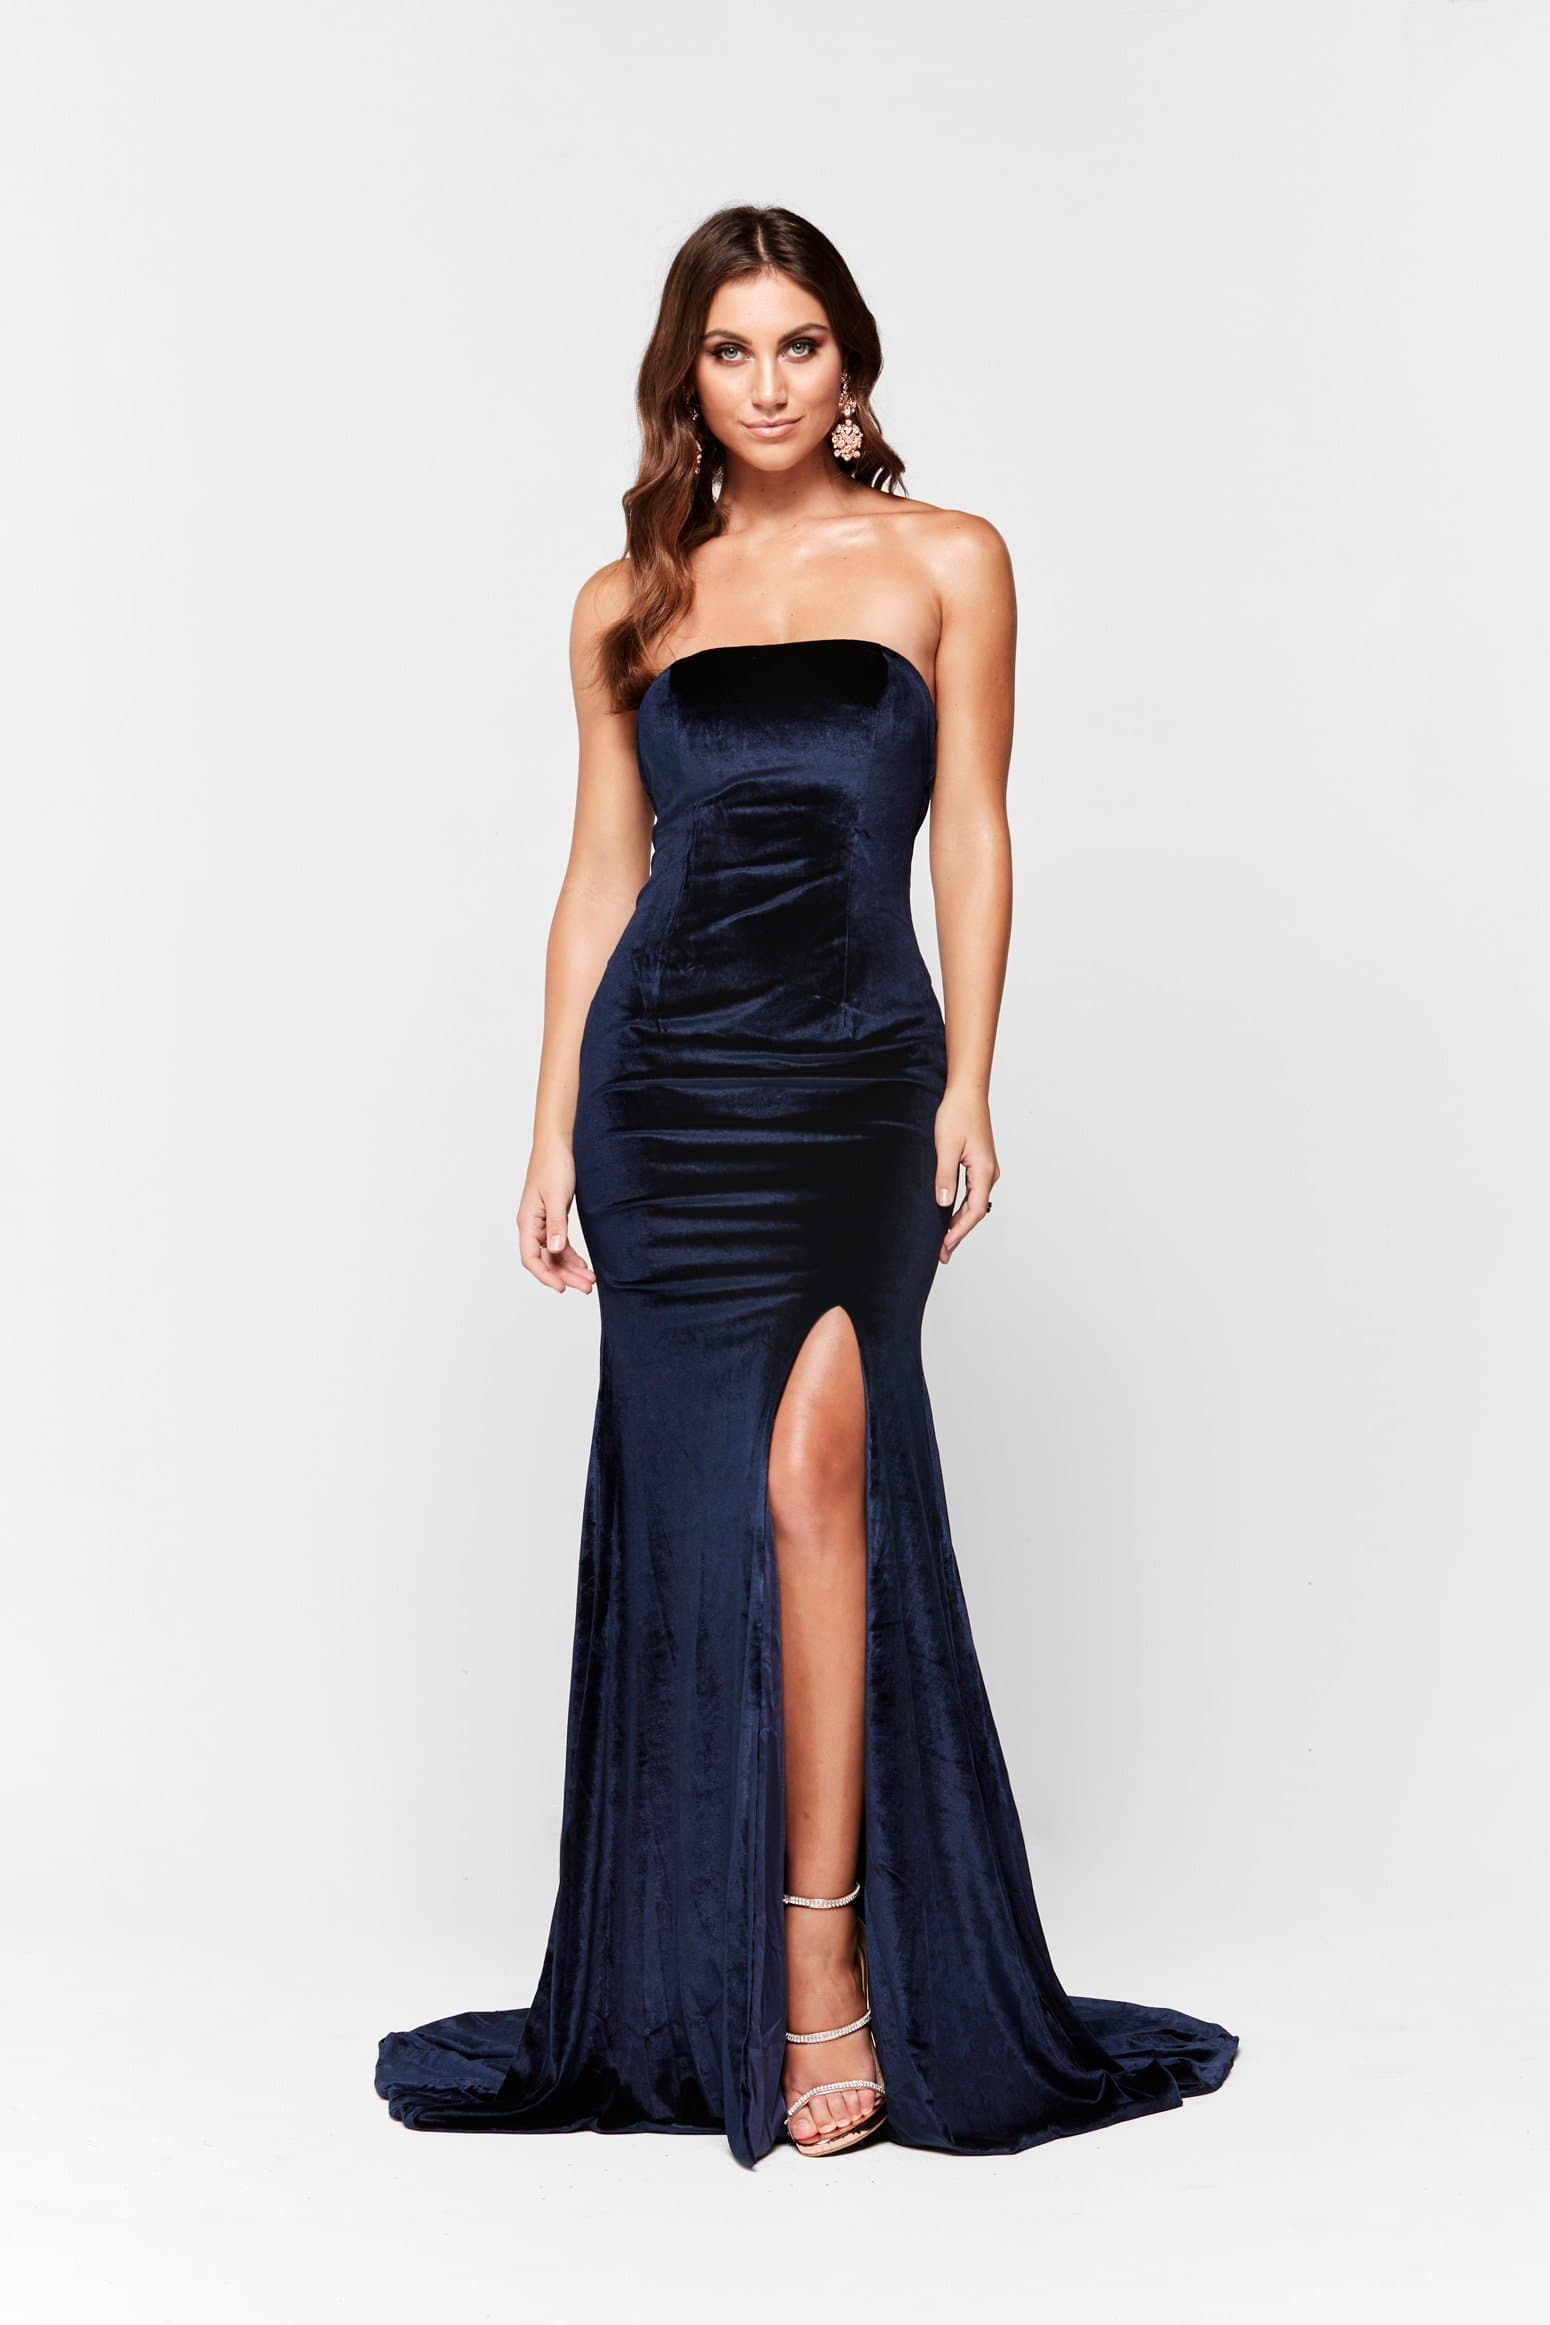 A&N Luxe Tiana Strapless Velvet Gown - Navy